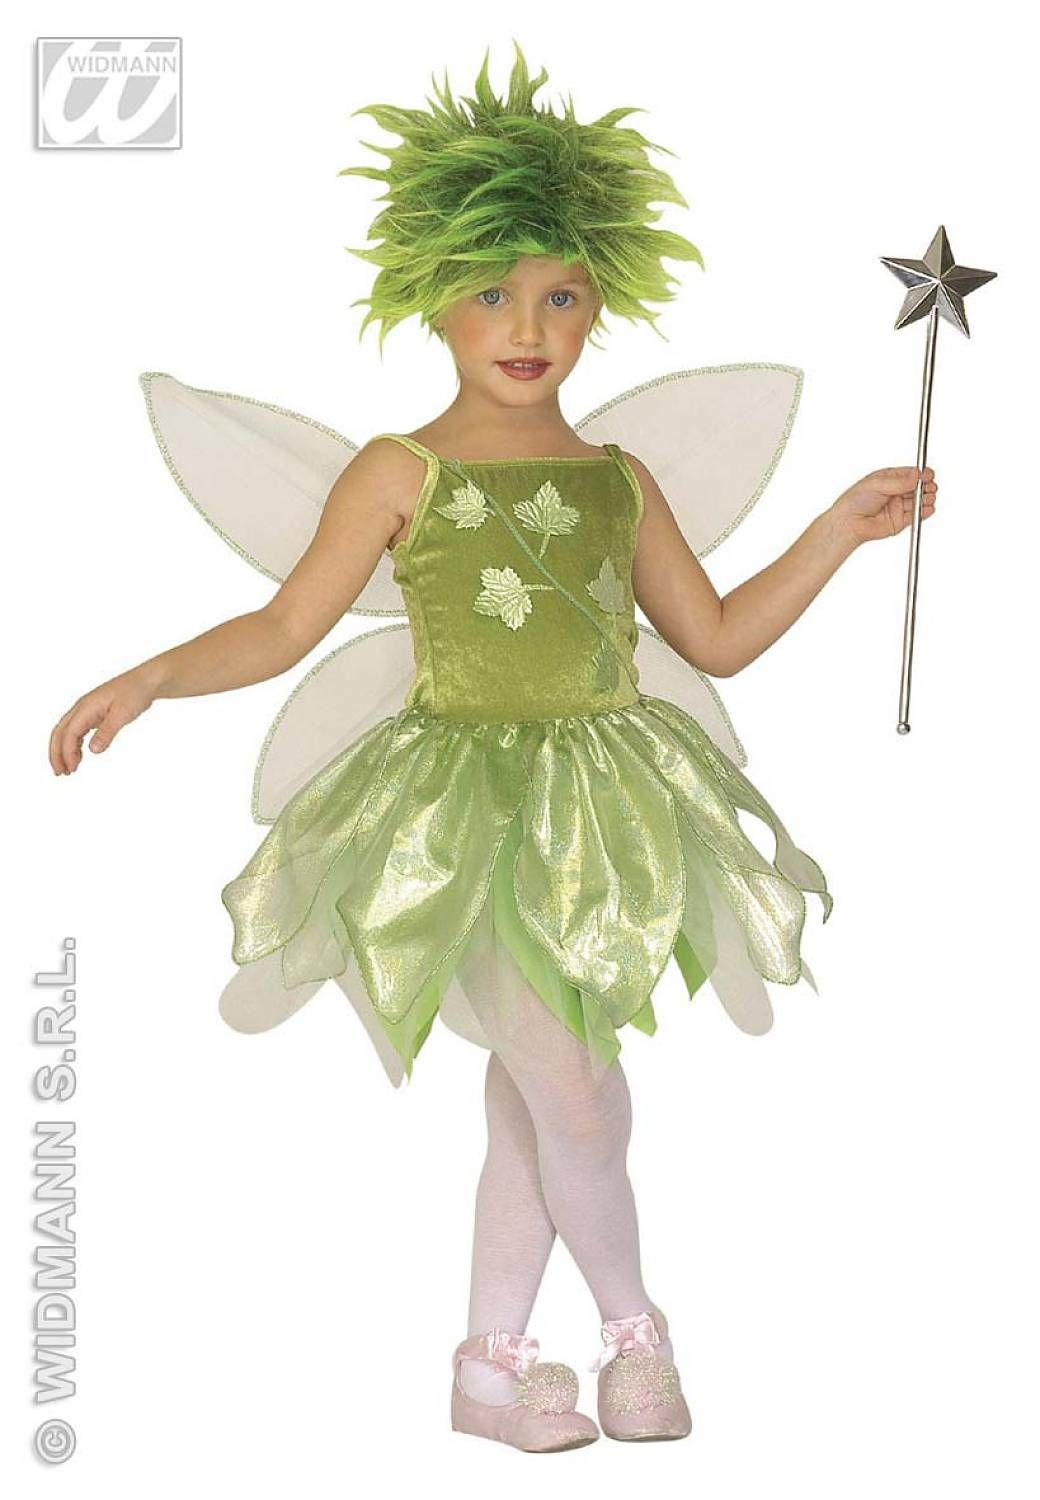 http://static.webshopapp.com/shops/002381/files/000410710/carnival-costumes-children-tree-fairy.jpg